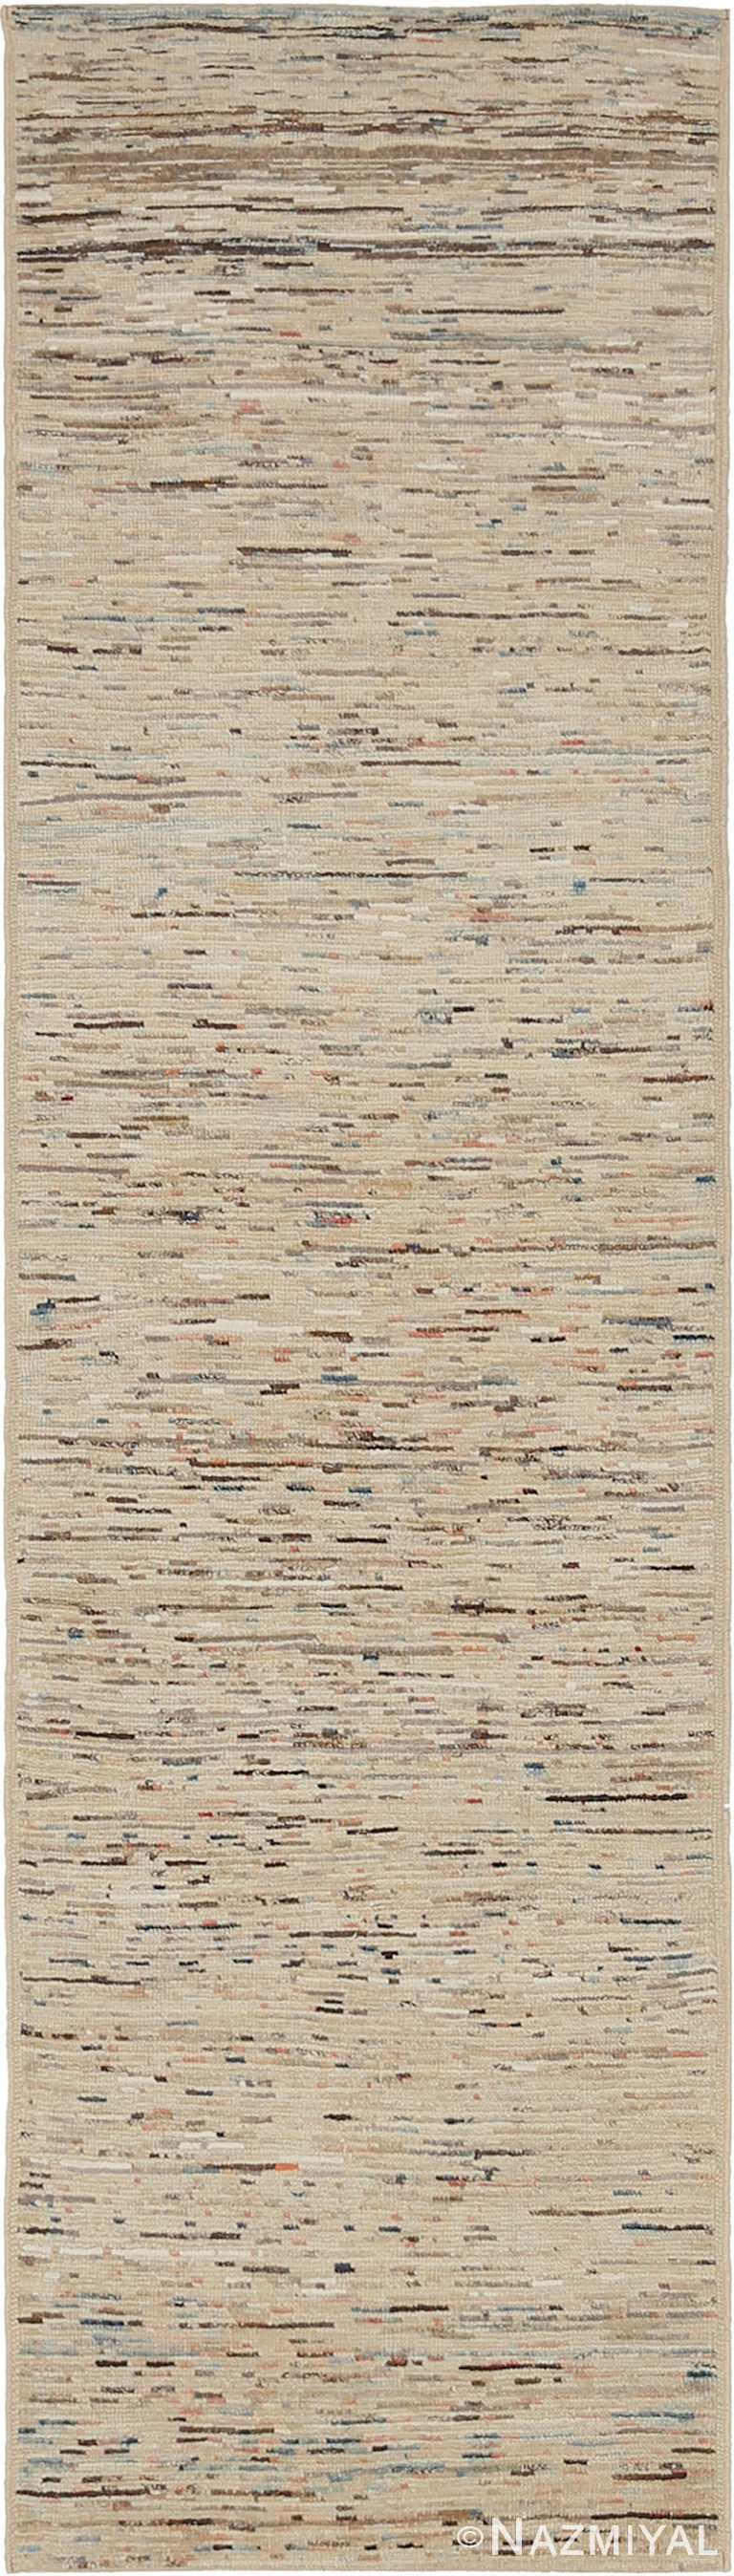 Beige Modern Moroccan Style Runner Rug 60329 by Nazmiyal NYC